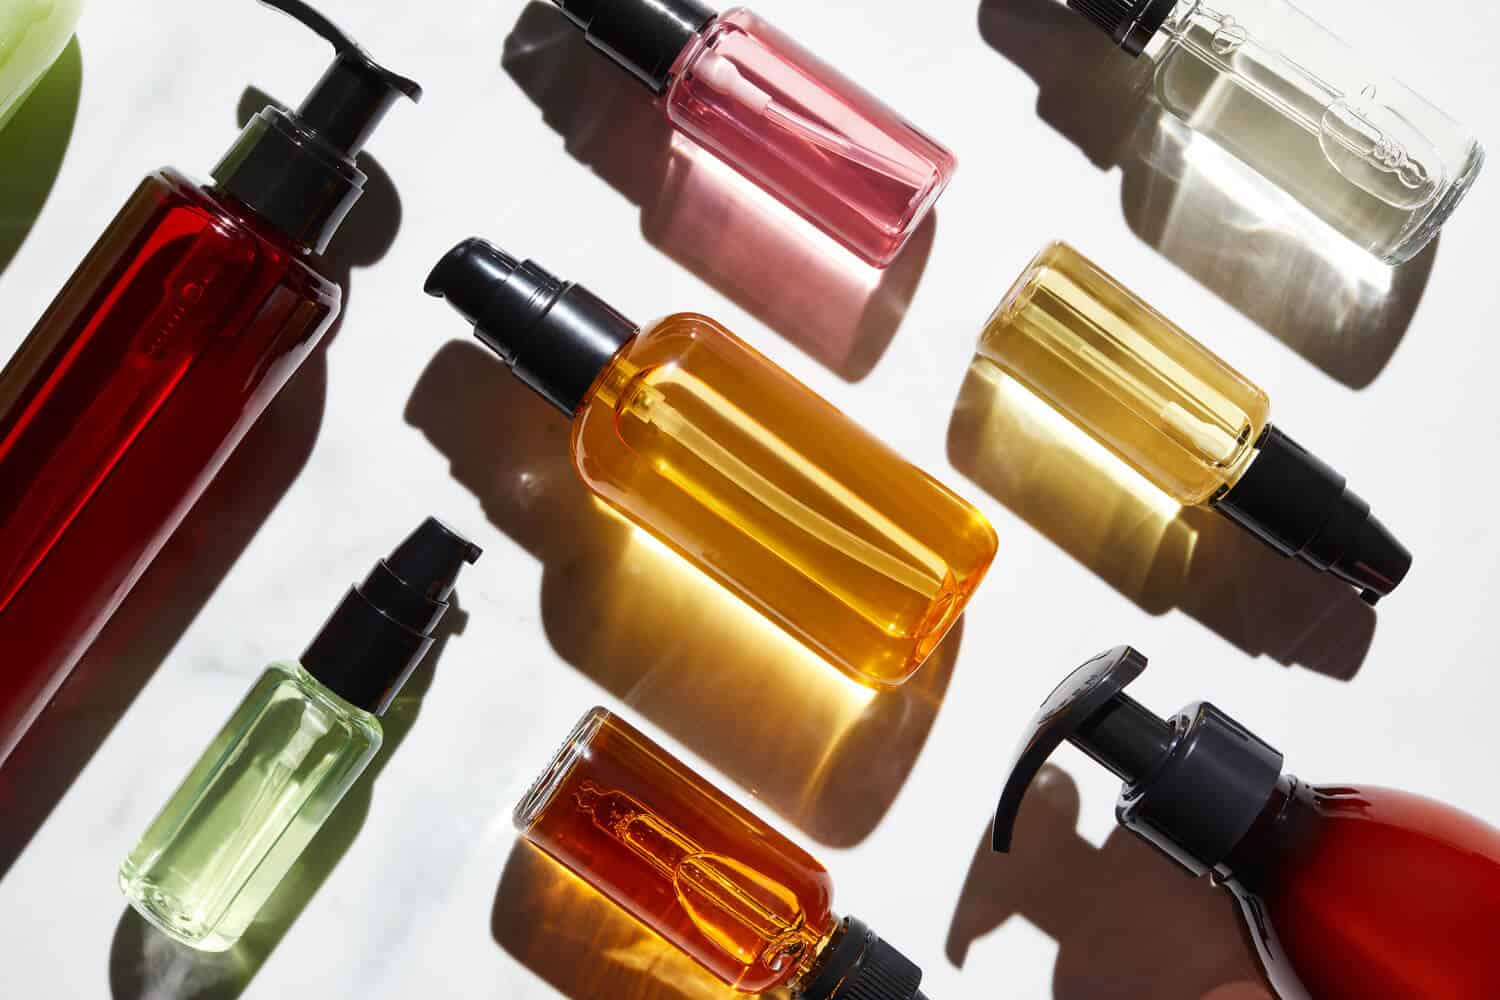 Colorful glass cosmetics packaging